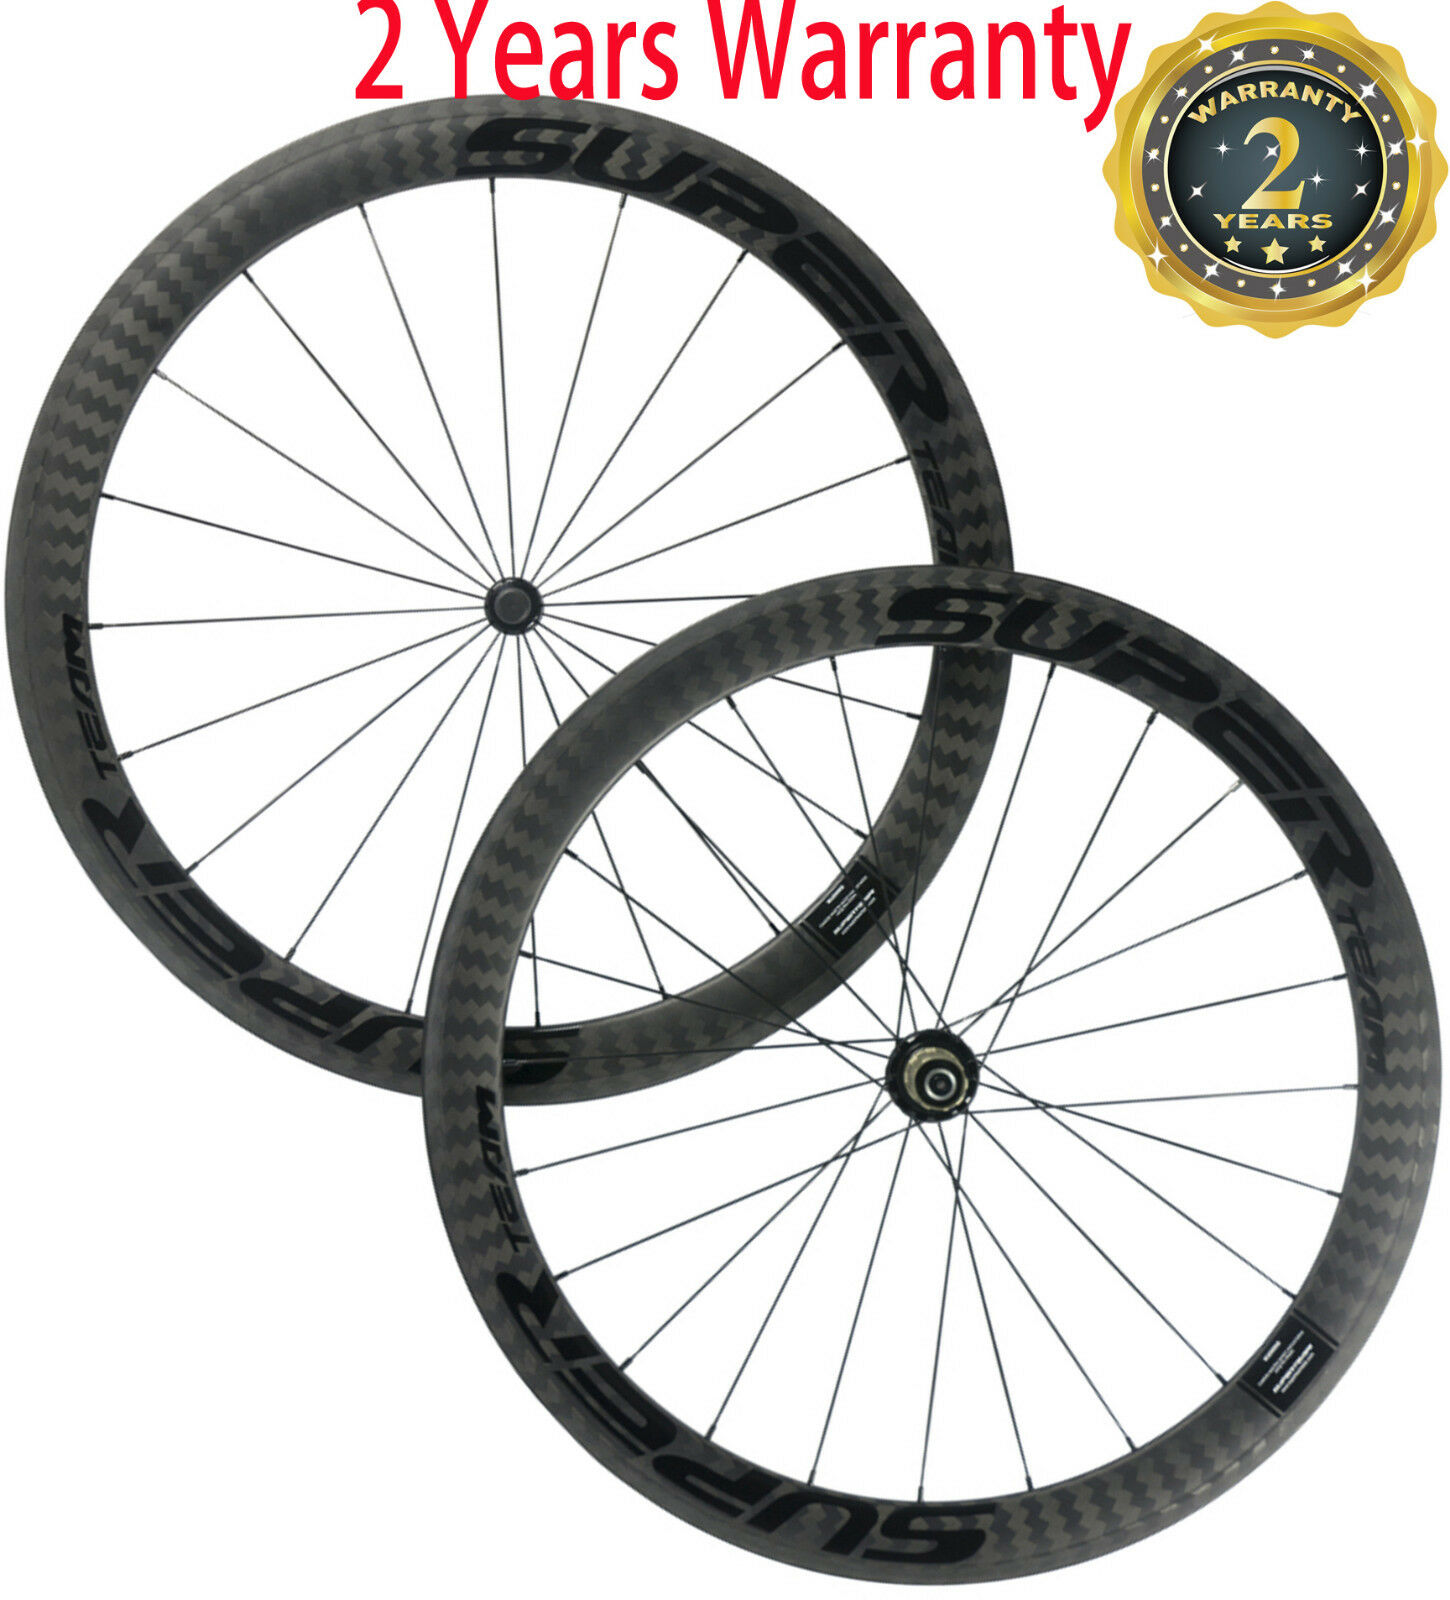 Carbon Wheels 50mm 25mm Width U Shape Clincher Wheels  R36 700C Bicycle Wheelset  fast shipping and best service